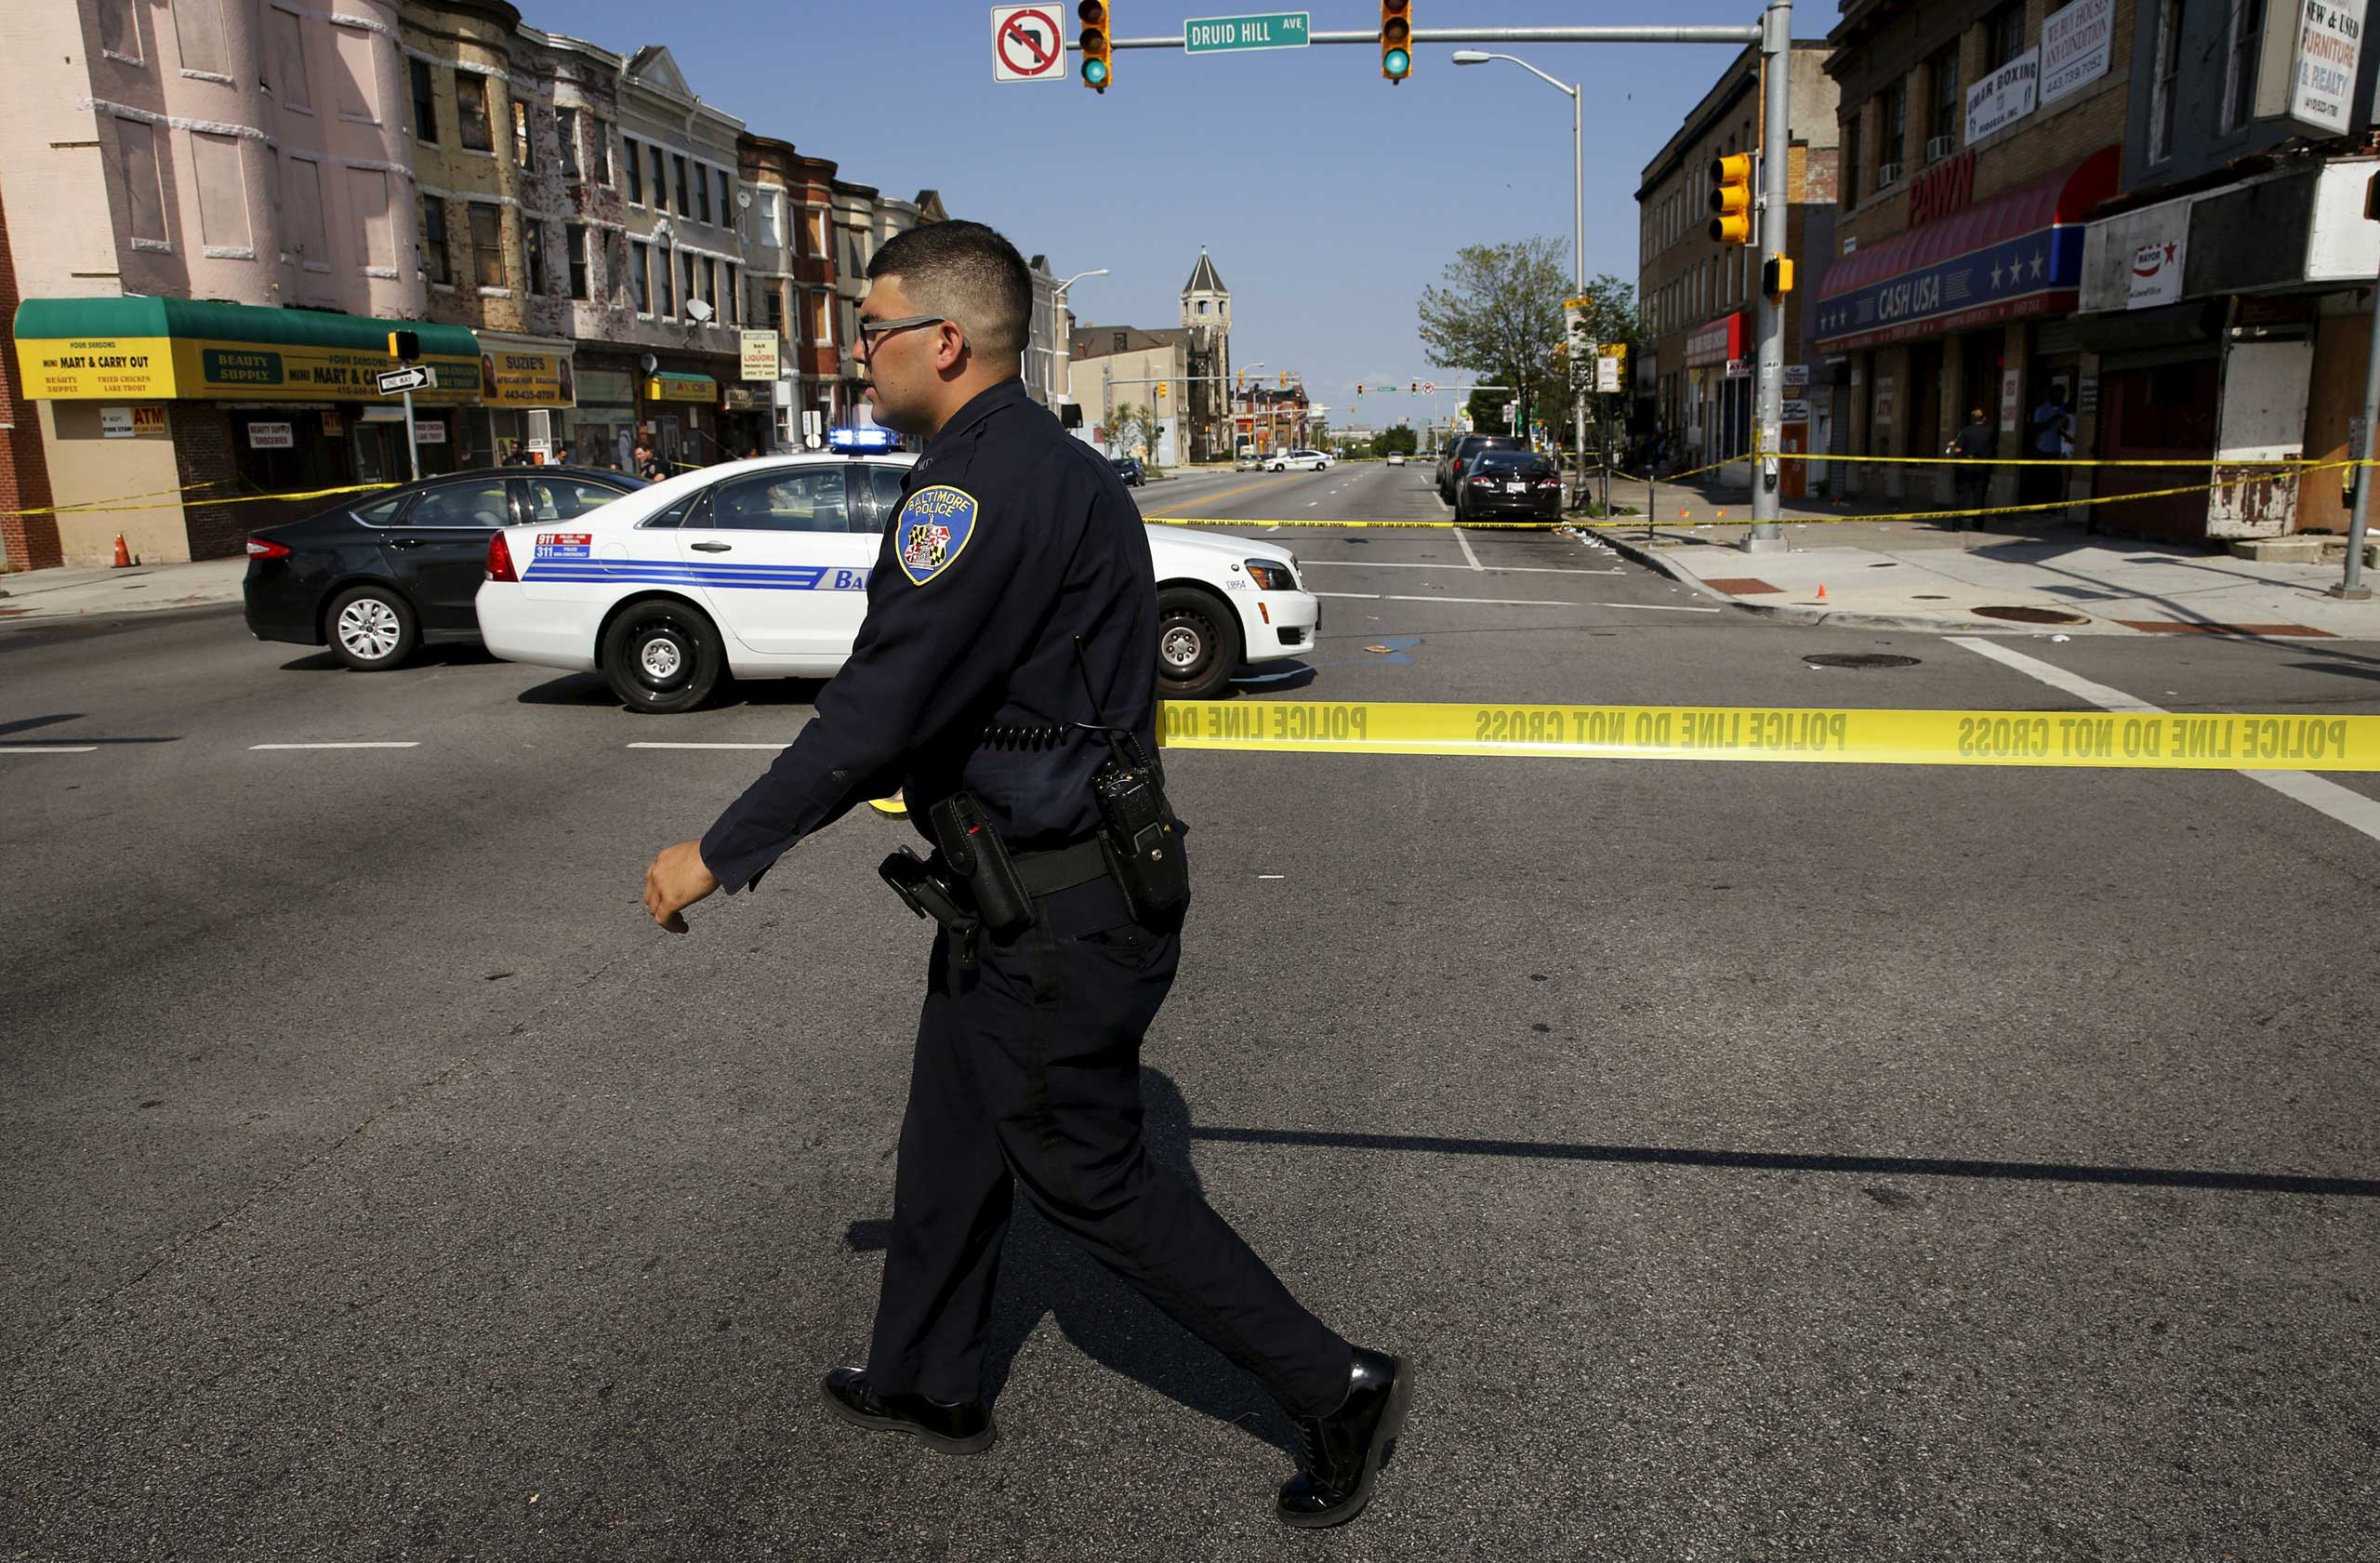 A Baltimore police officer attempts to secure a crime scene with tape at the scene of a shooting in West Baltimore on May 30, 2015.